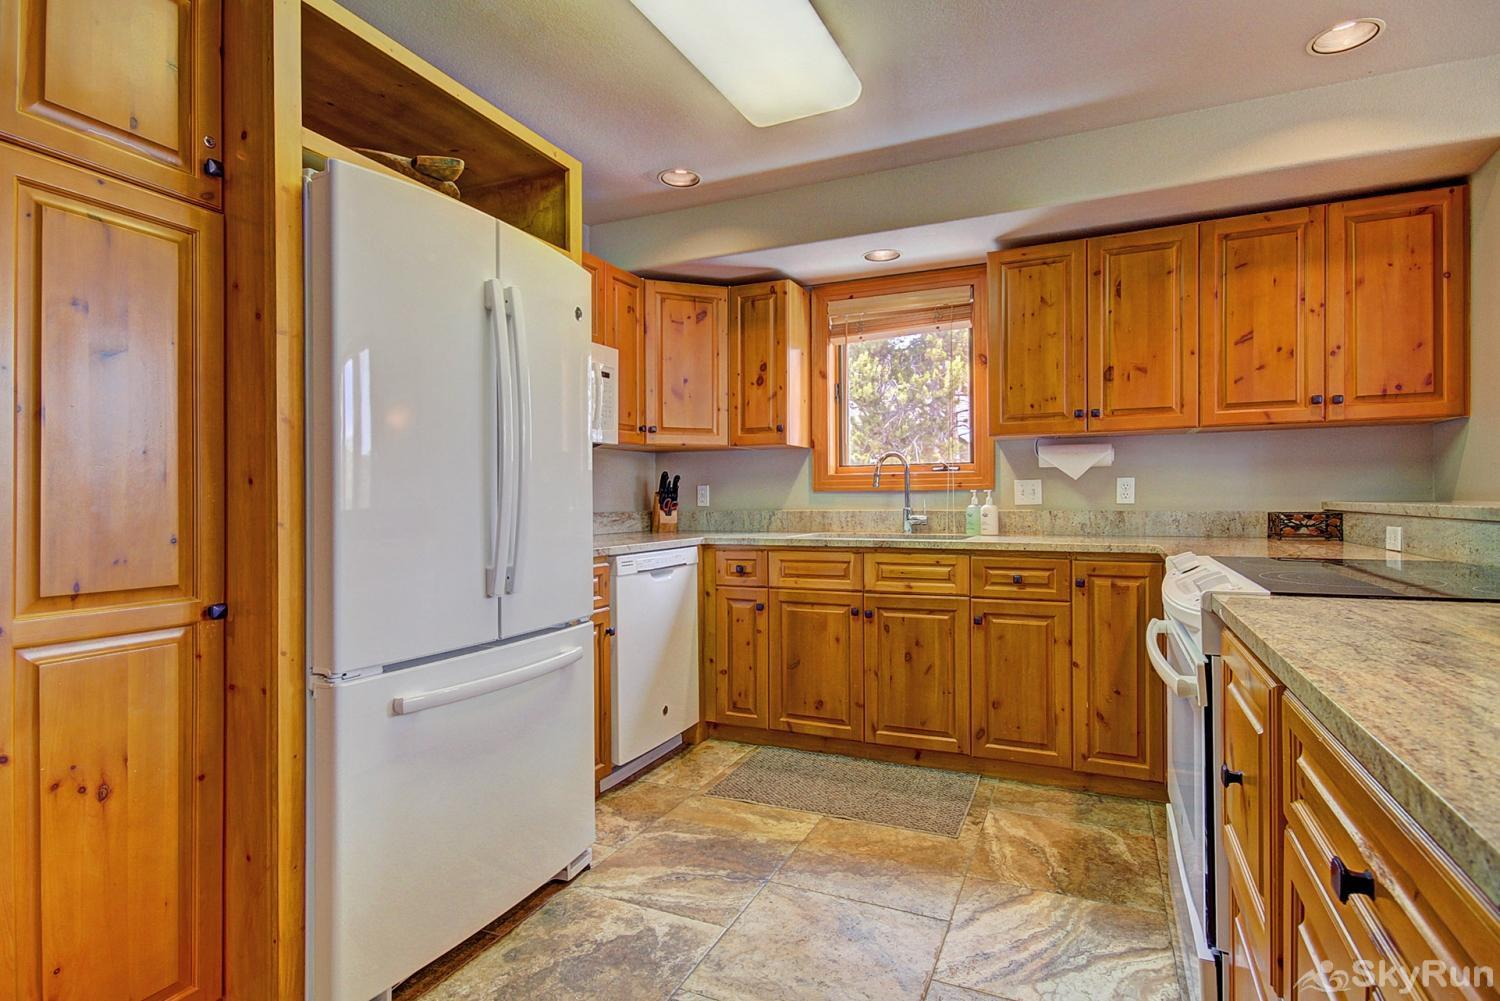 Elk Ridge Retreat Alternate view of fully equipped kitchen